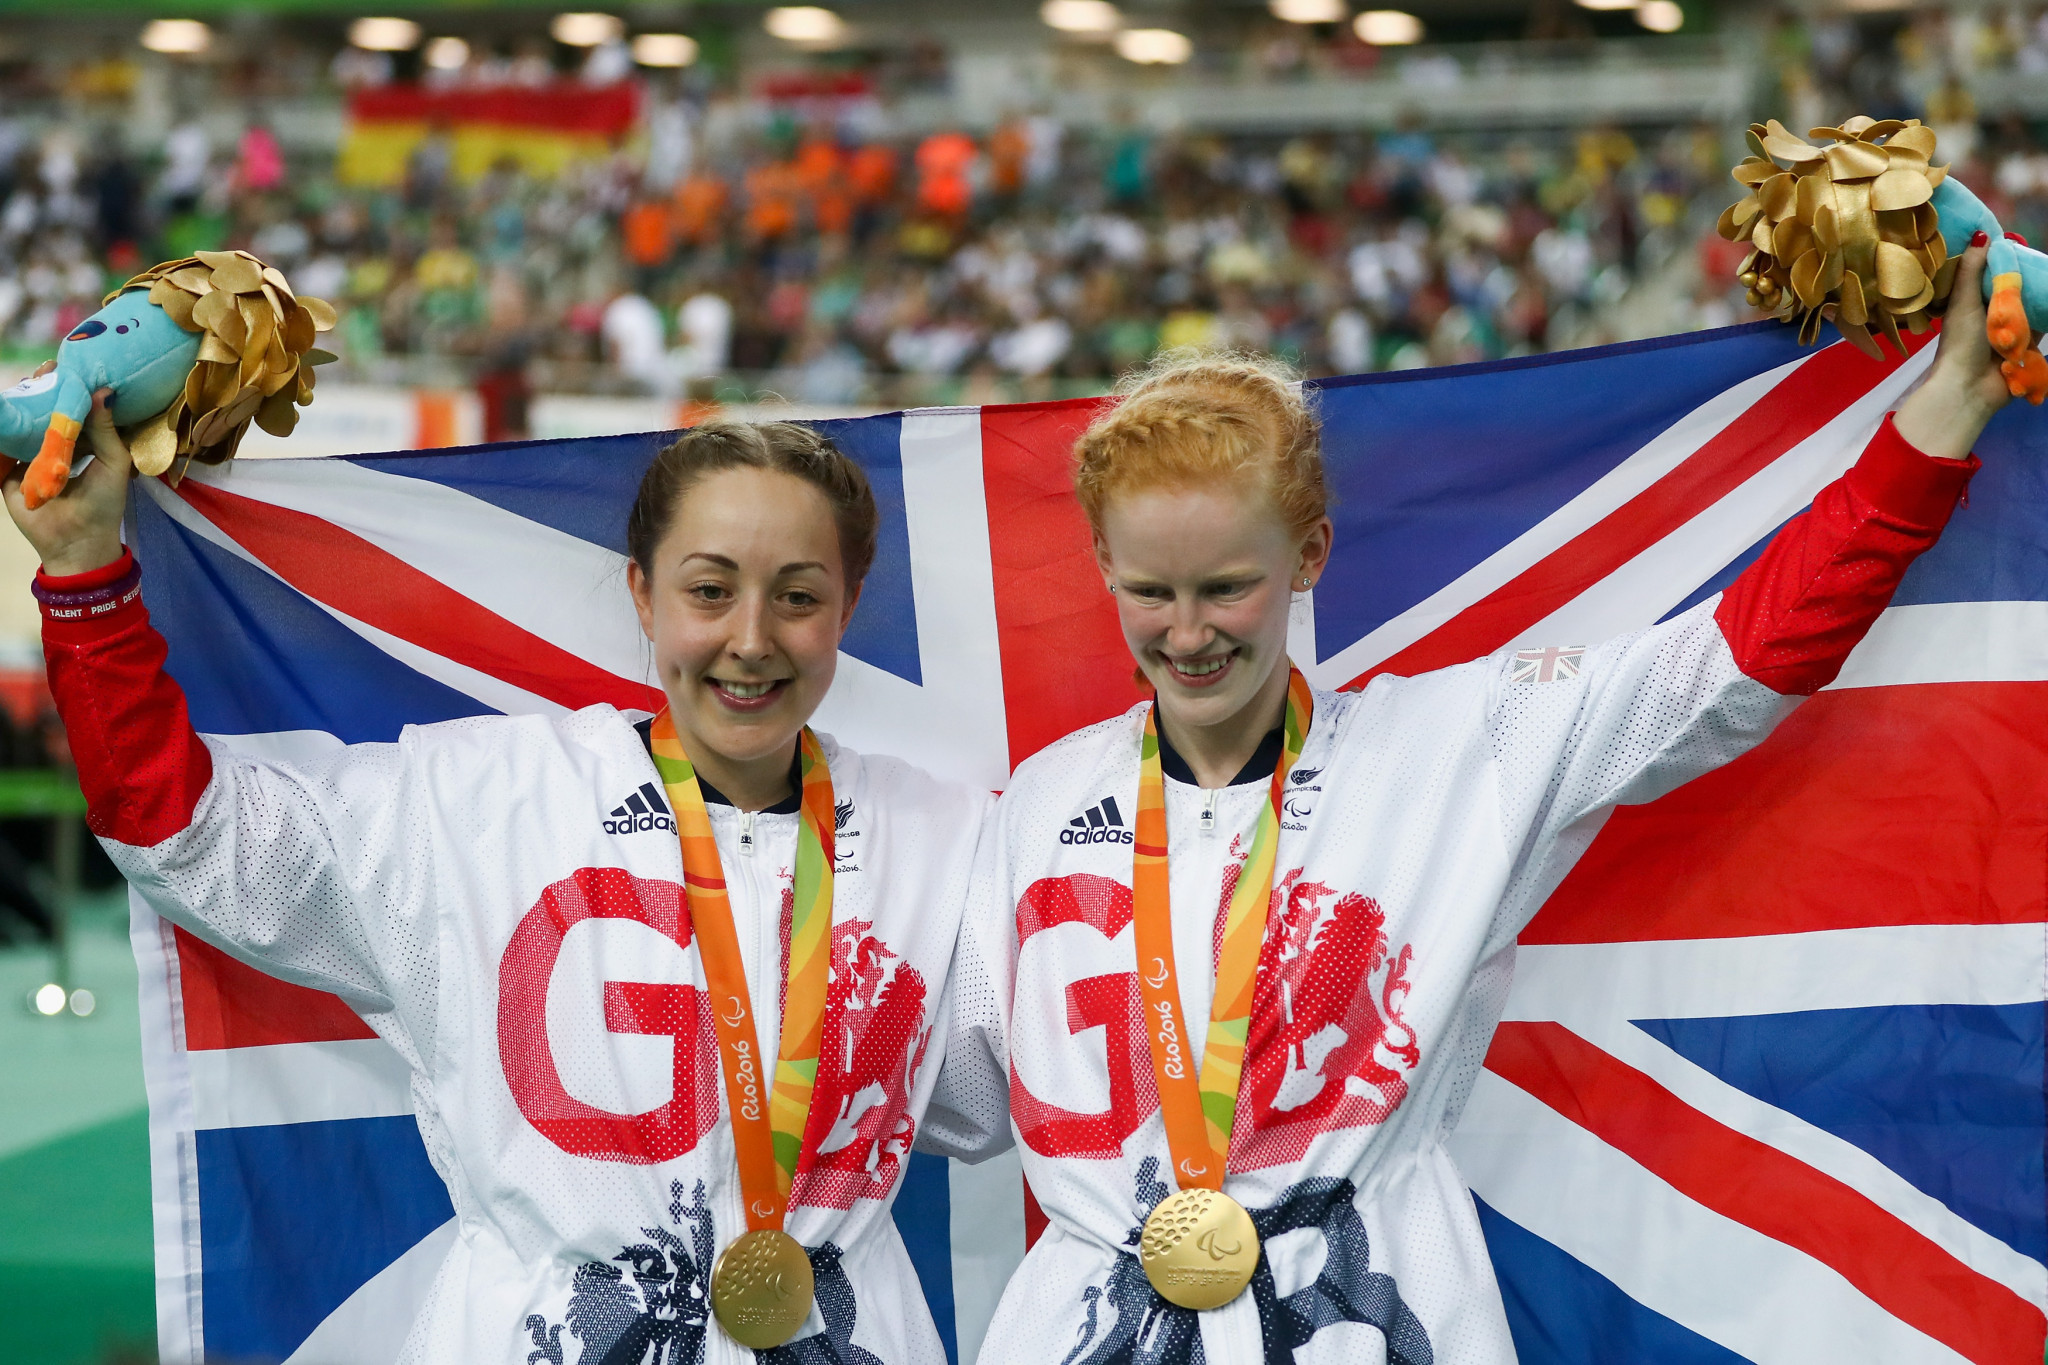 Paralympic champion Thornhill retires after Tokyo 2020 postponement